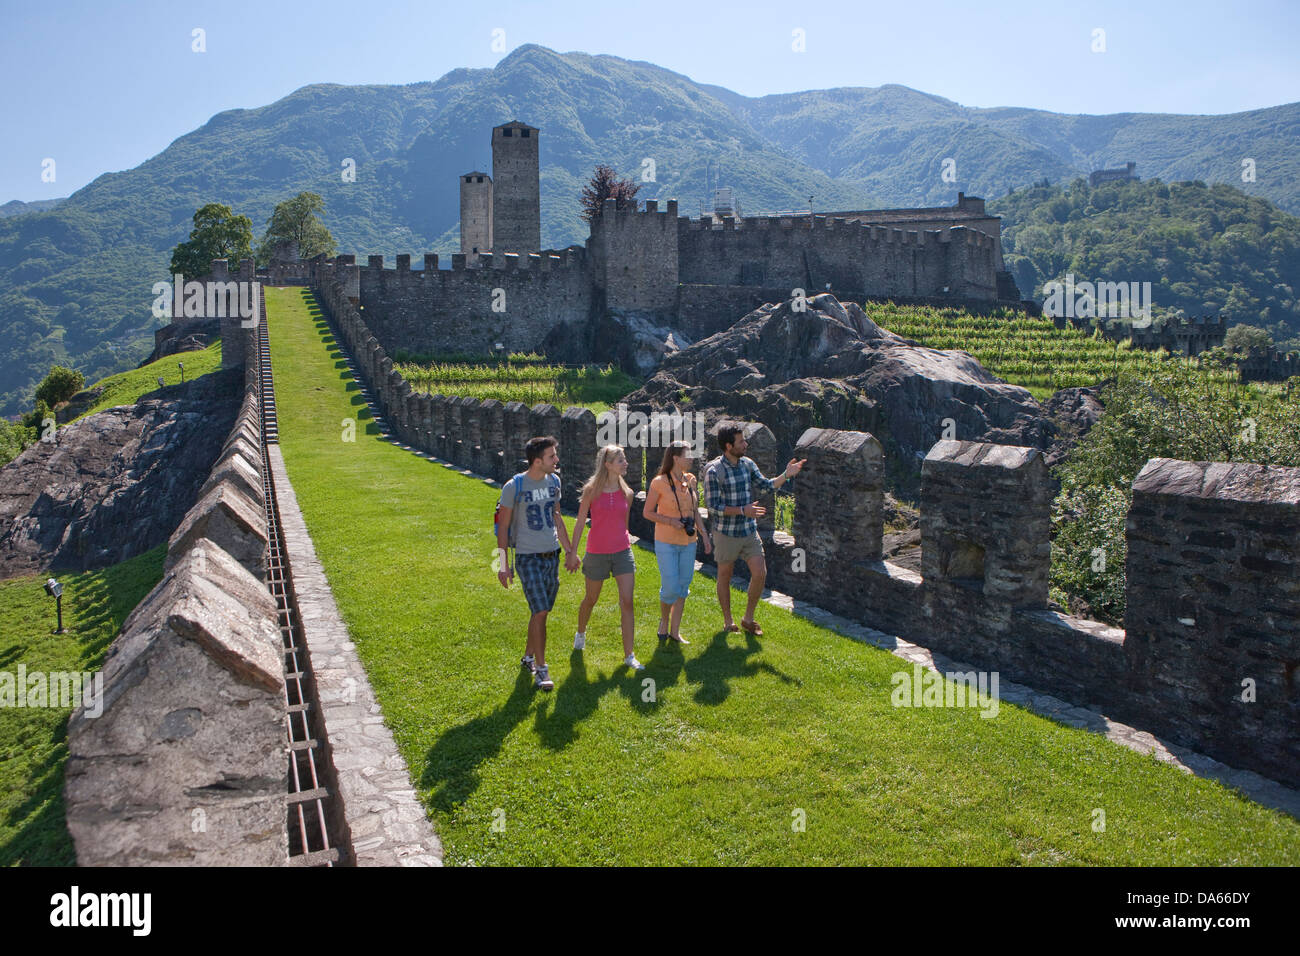 Tourists, Monte Bello, visit, building, construction, Castle, tourism, holidays, canton, TI, Ticino, South Switzerland, - Stock Image